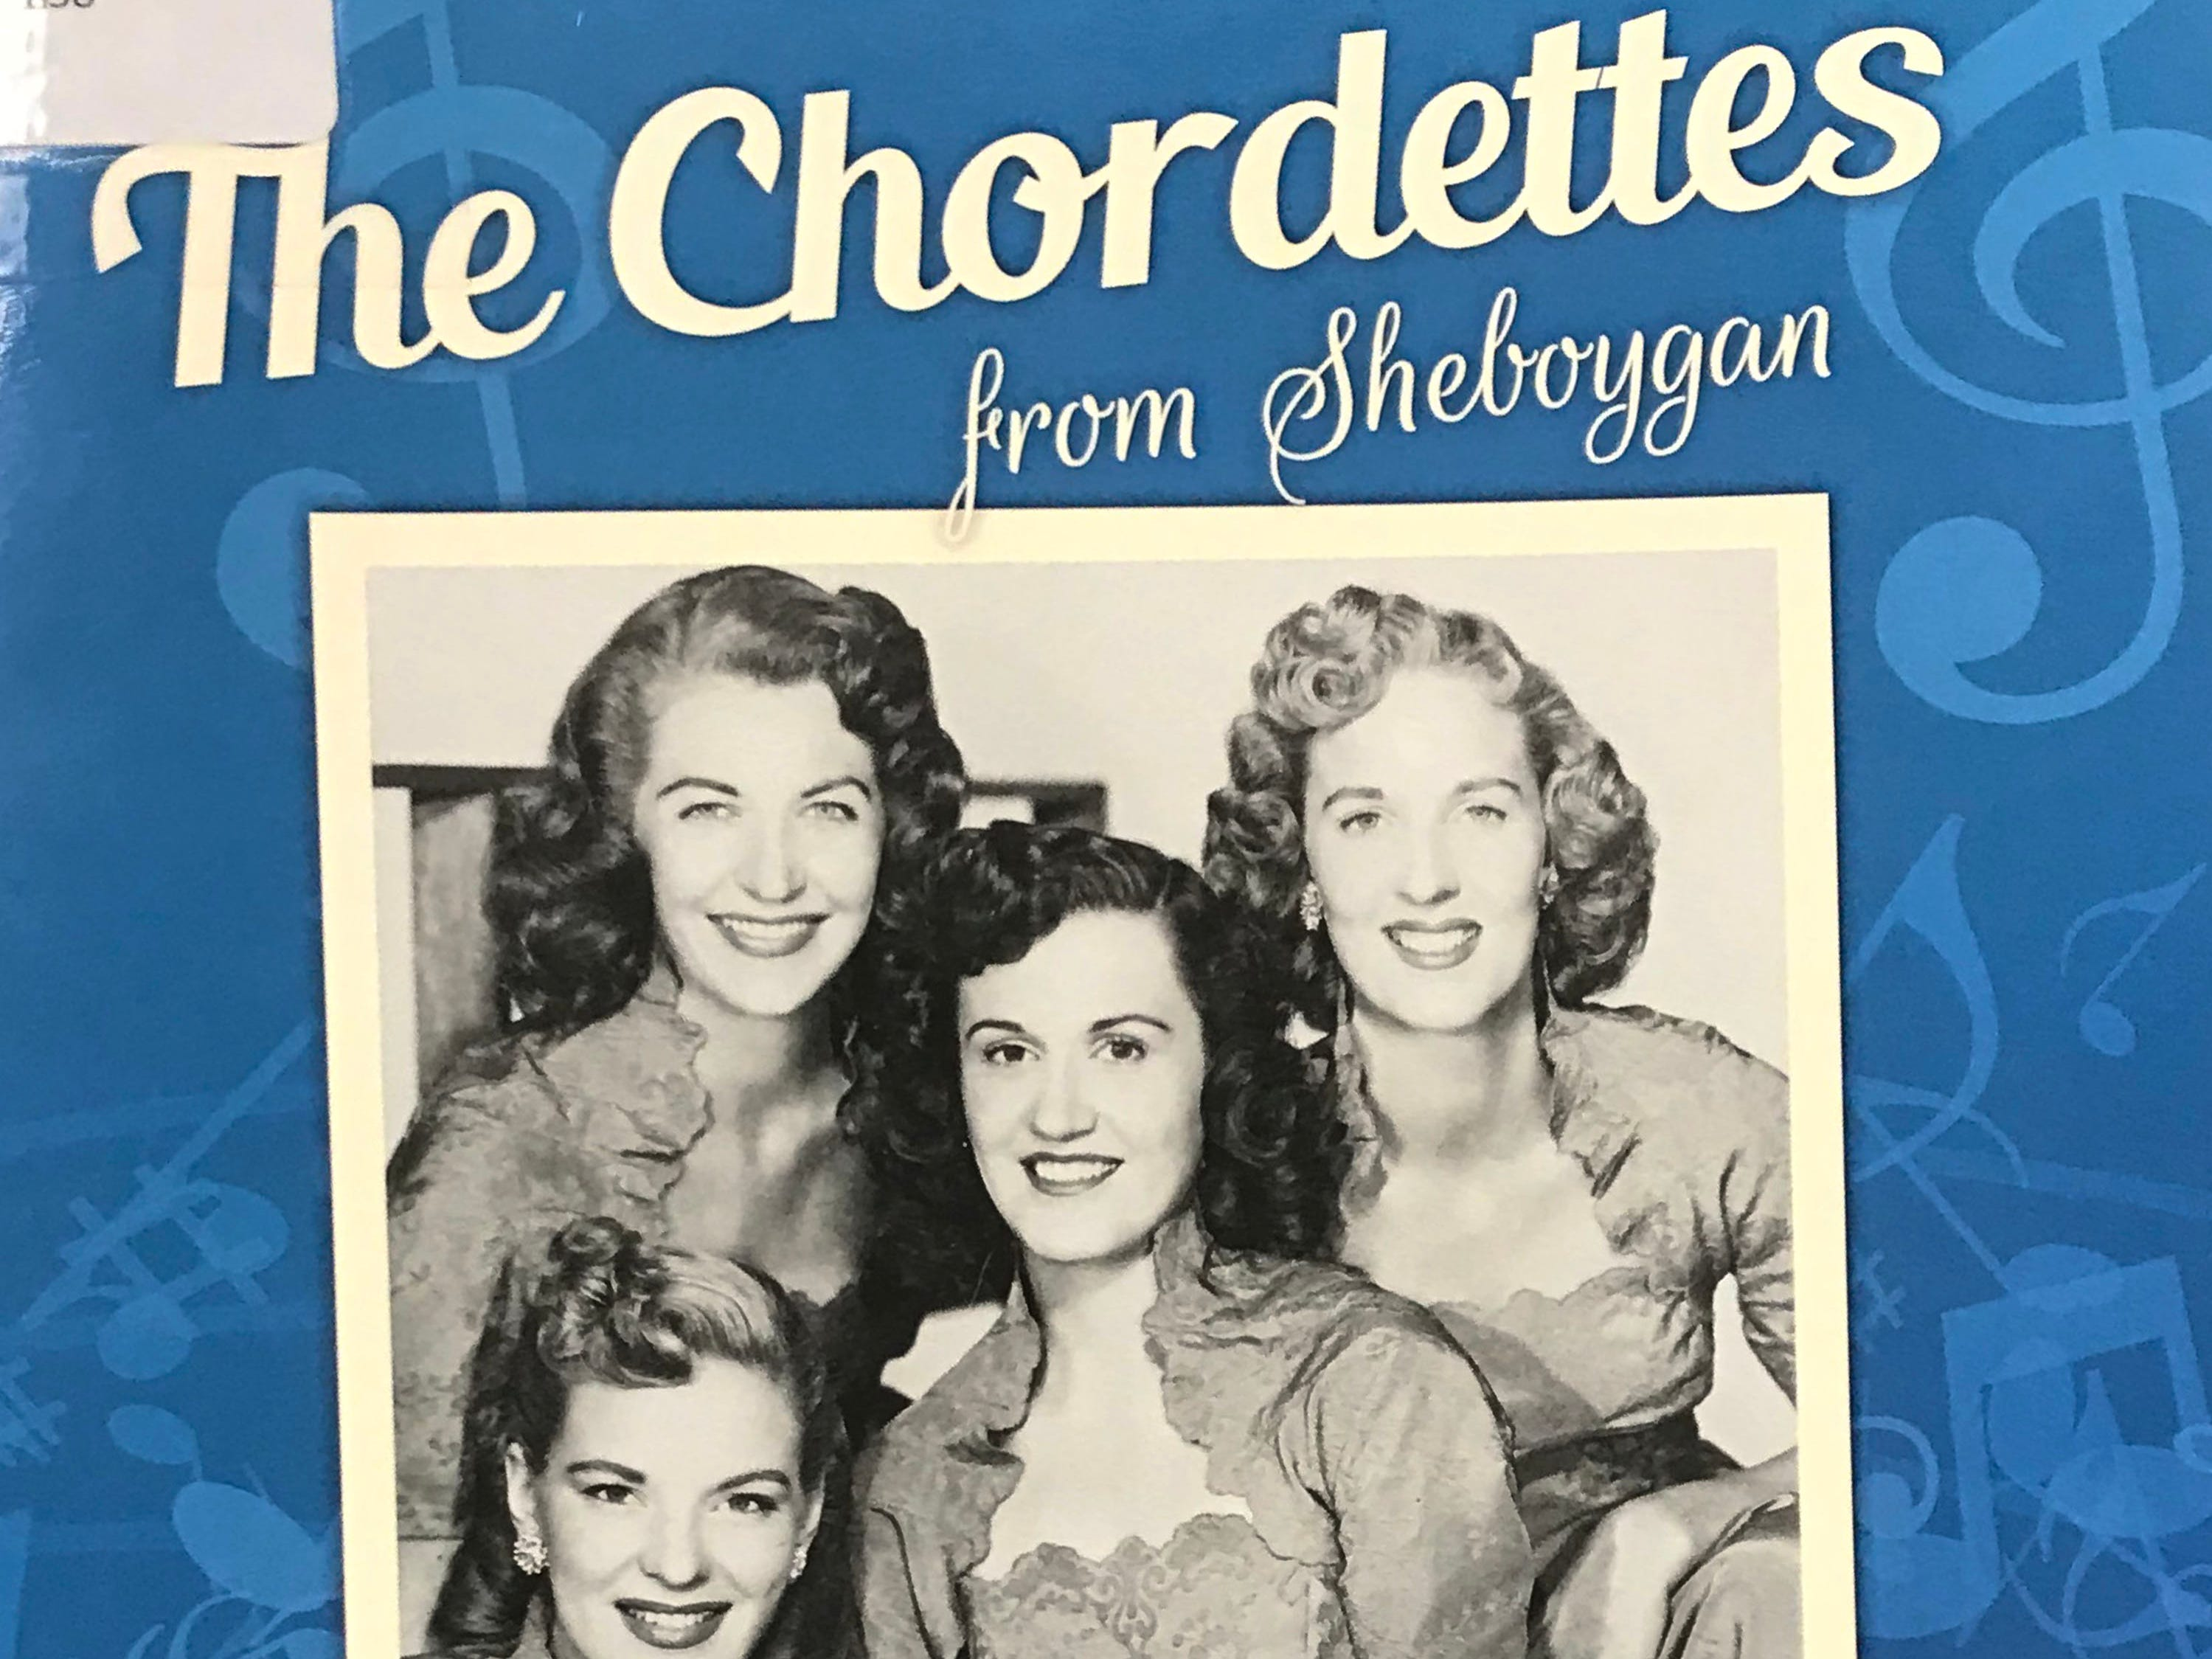 The late Scott Lewandoske wrote a book on the Chordettes that never got published due to issues with copyright of art. The proof copy is pictured at the Sheboygan County Historical Research Center.